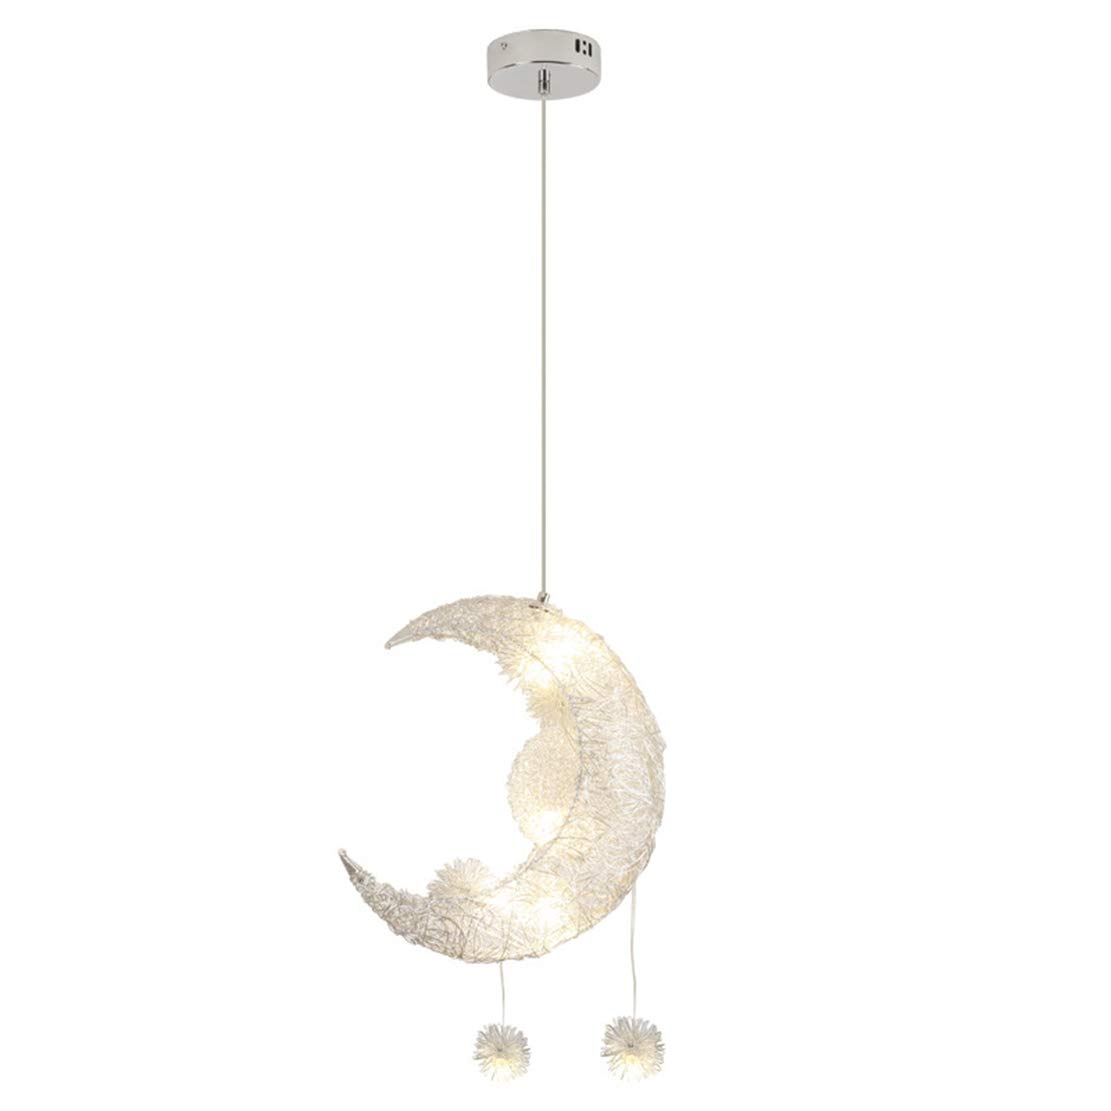 SOUTHPO Moon Pendant Light Lamp Fixture Aluminum Chandeliers for Dining Rooms Girls Bedrooms Children Room Modern LED Star Adjustable Hanging Lights,5×G4,Max 25W,Warm White Light,Ø12.6 inches,Silver